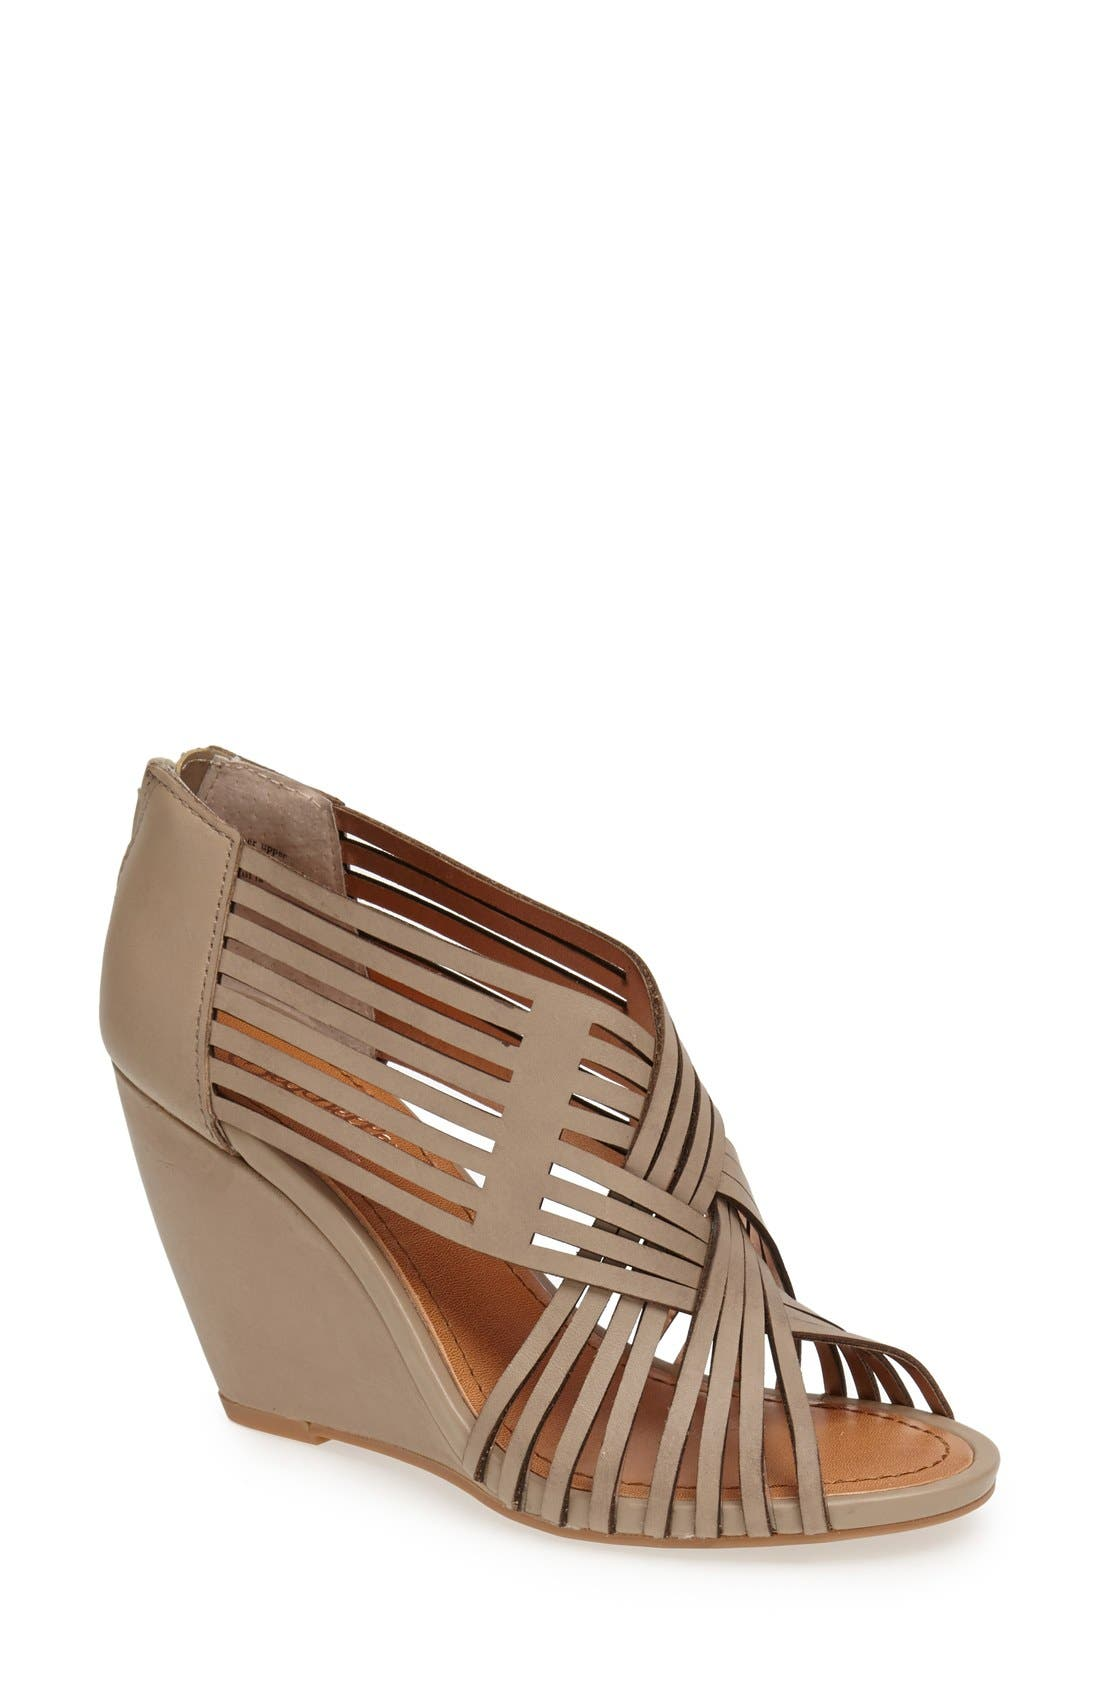 Main Image - Seychelles 'Get To Know Me' Sandal (Women)